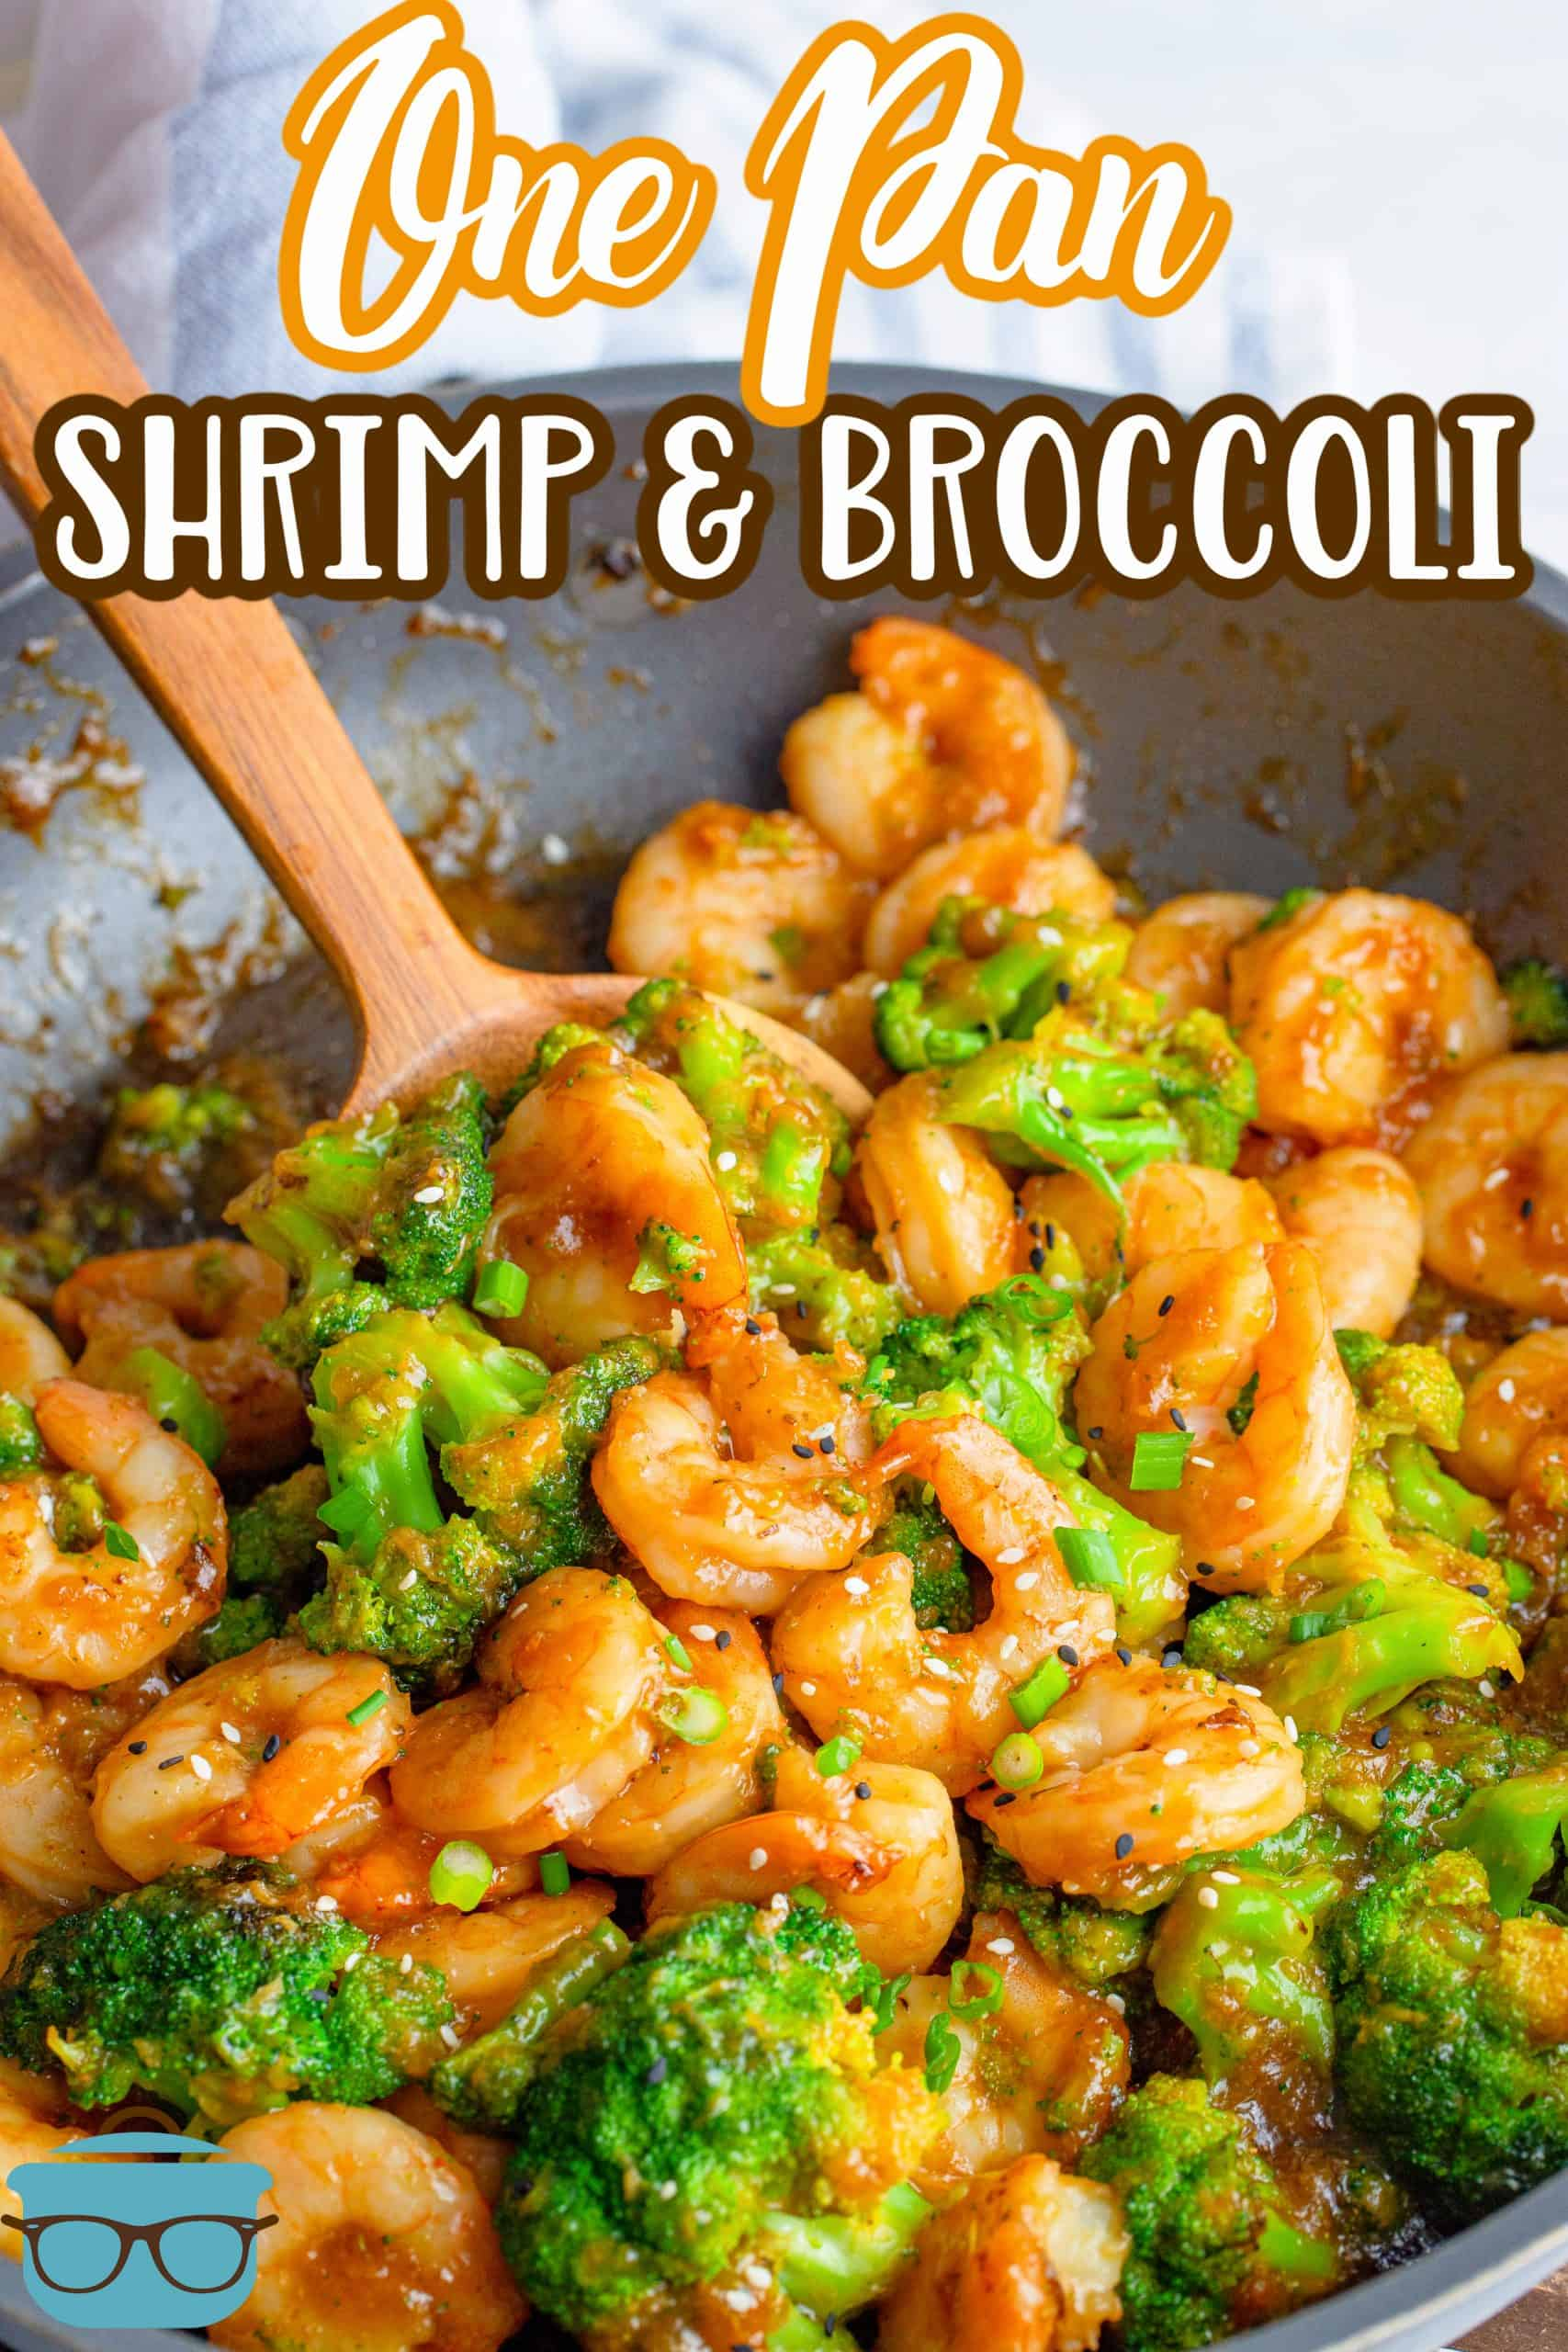 A deliciously easy dinner meal, this One Pan Shrimp and Broccoli is sautéed with a delicious homemade sauce and served over rice. A family favorite weeknight dish!